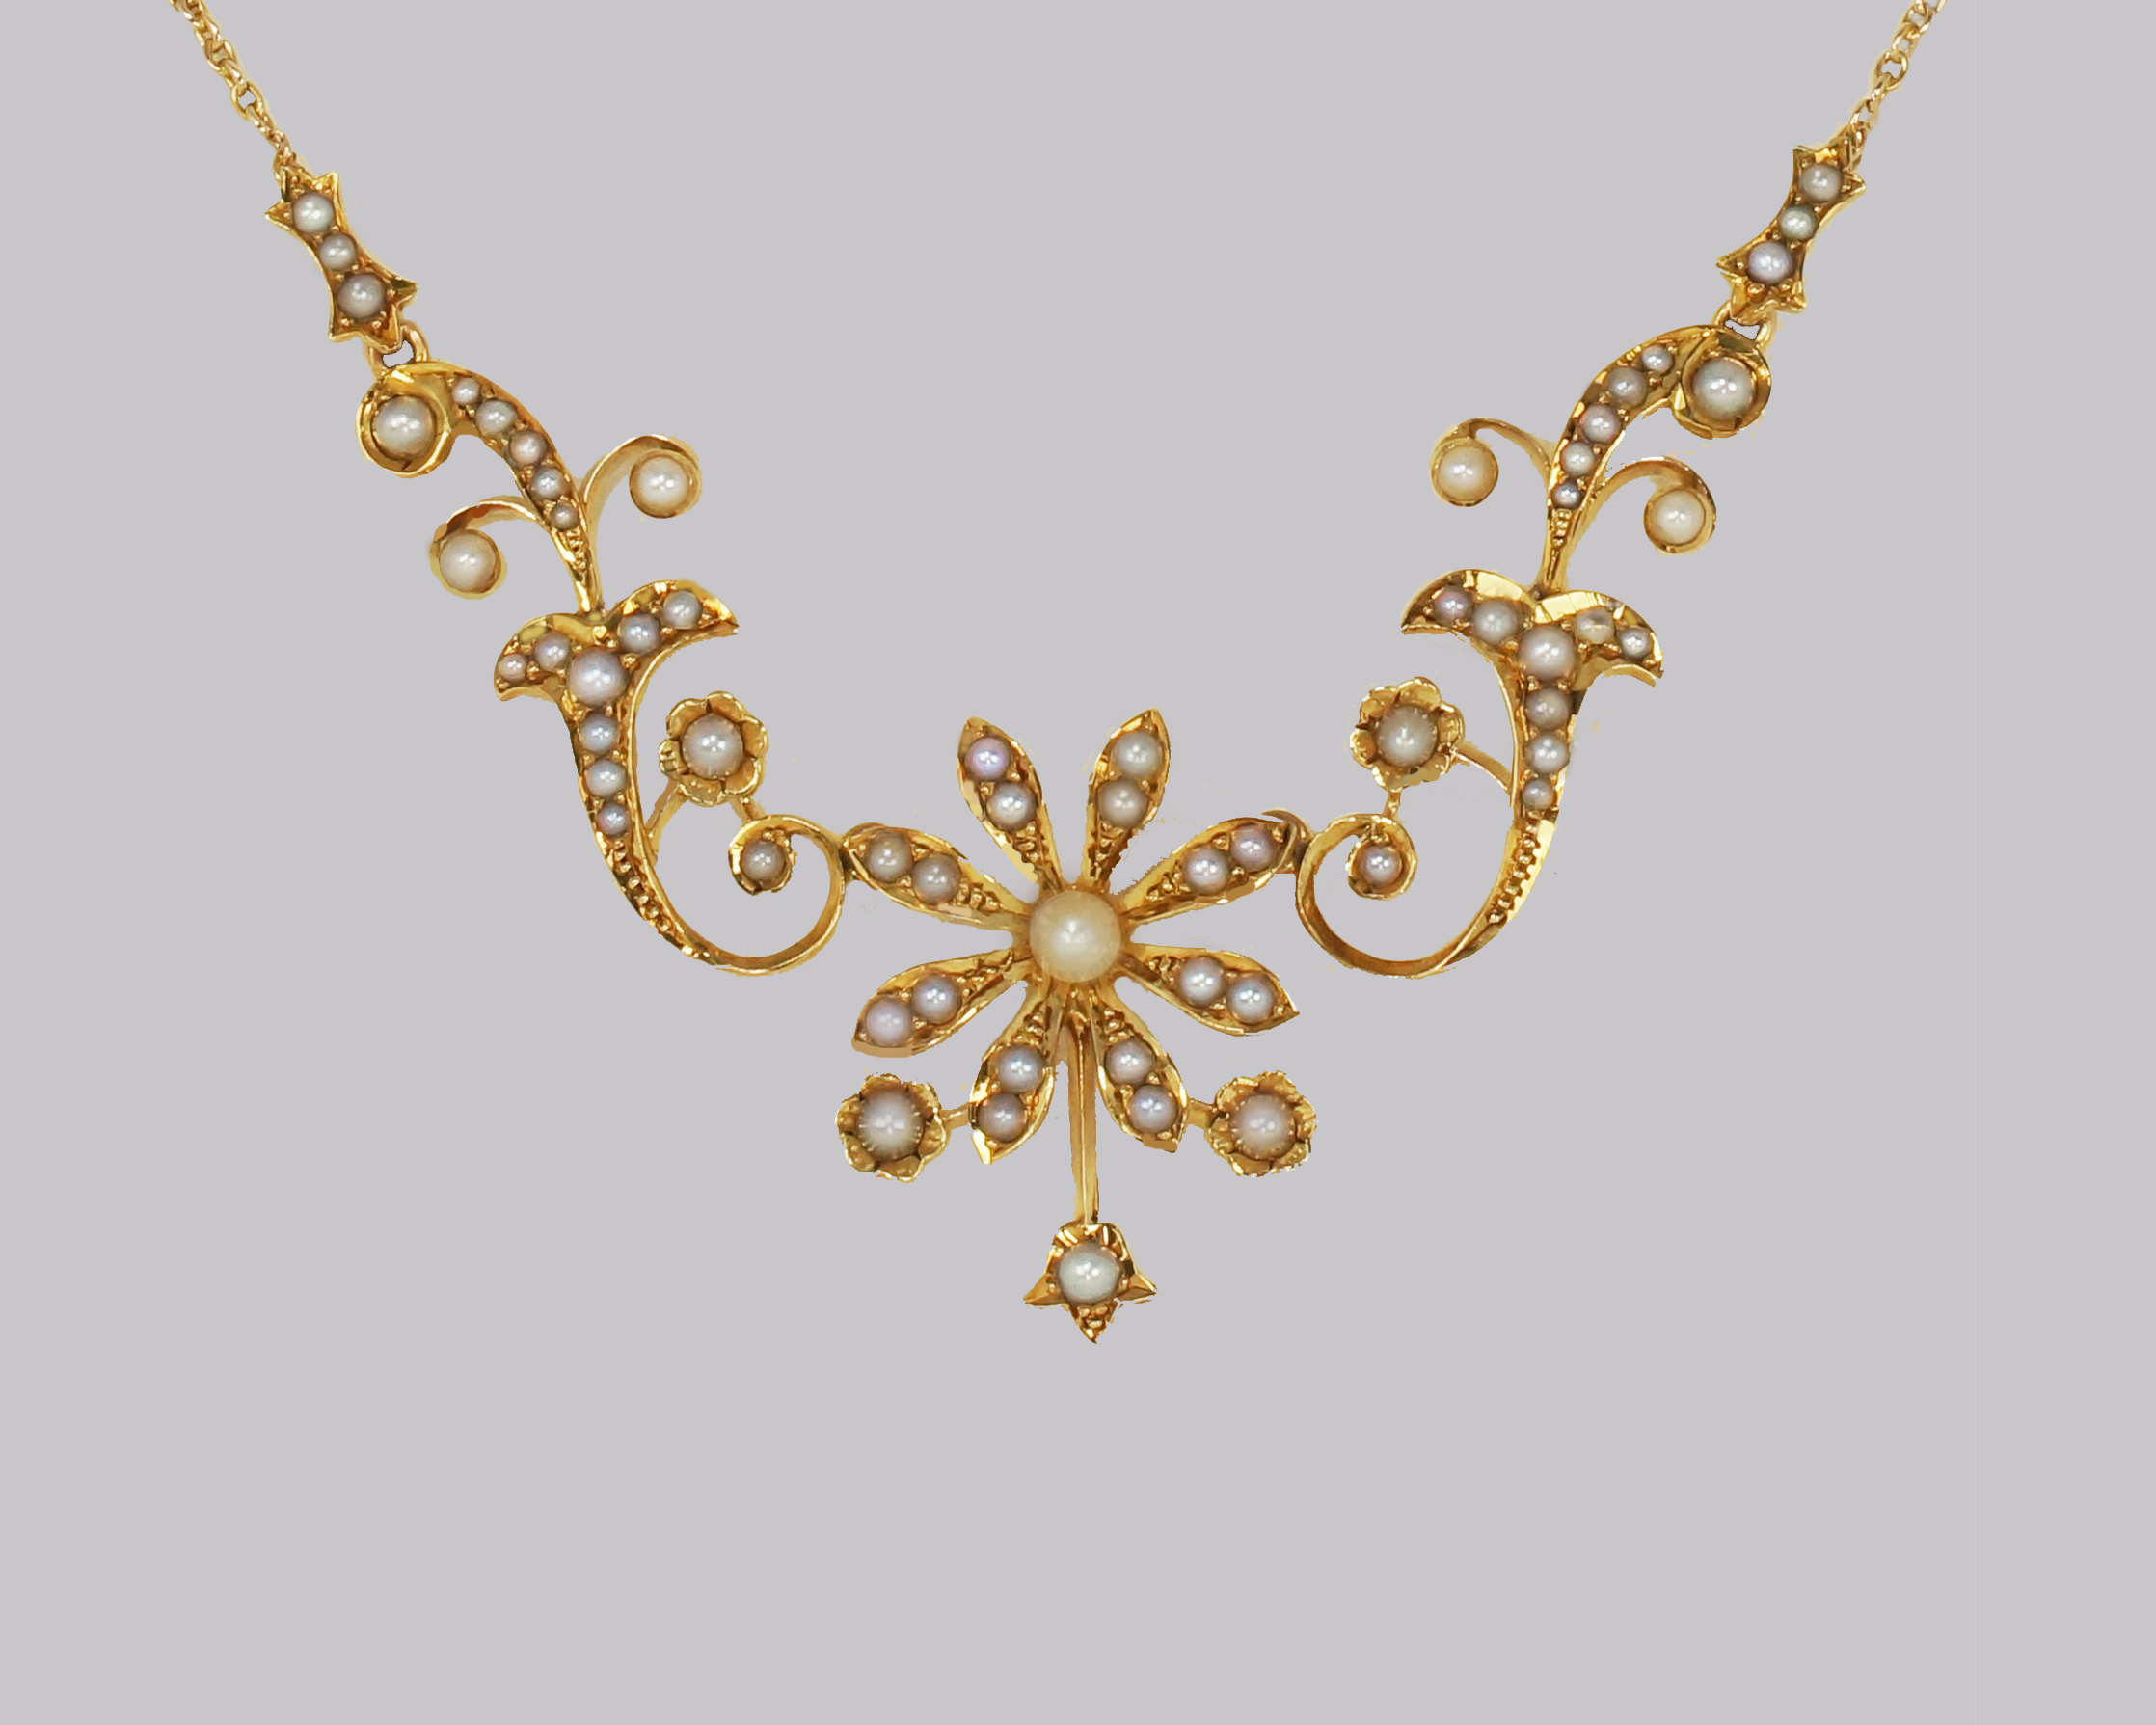 Gorgeous Edwardian seed pearl necklace